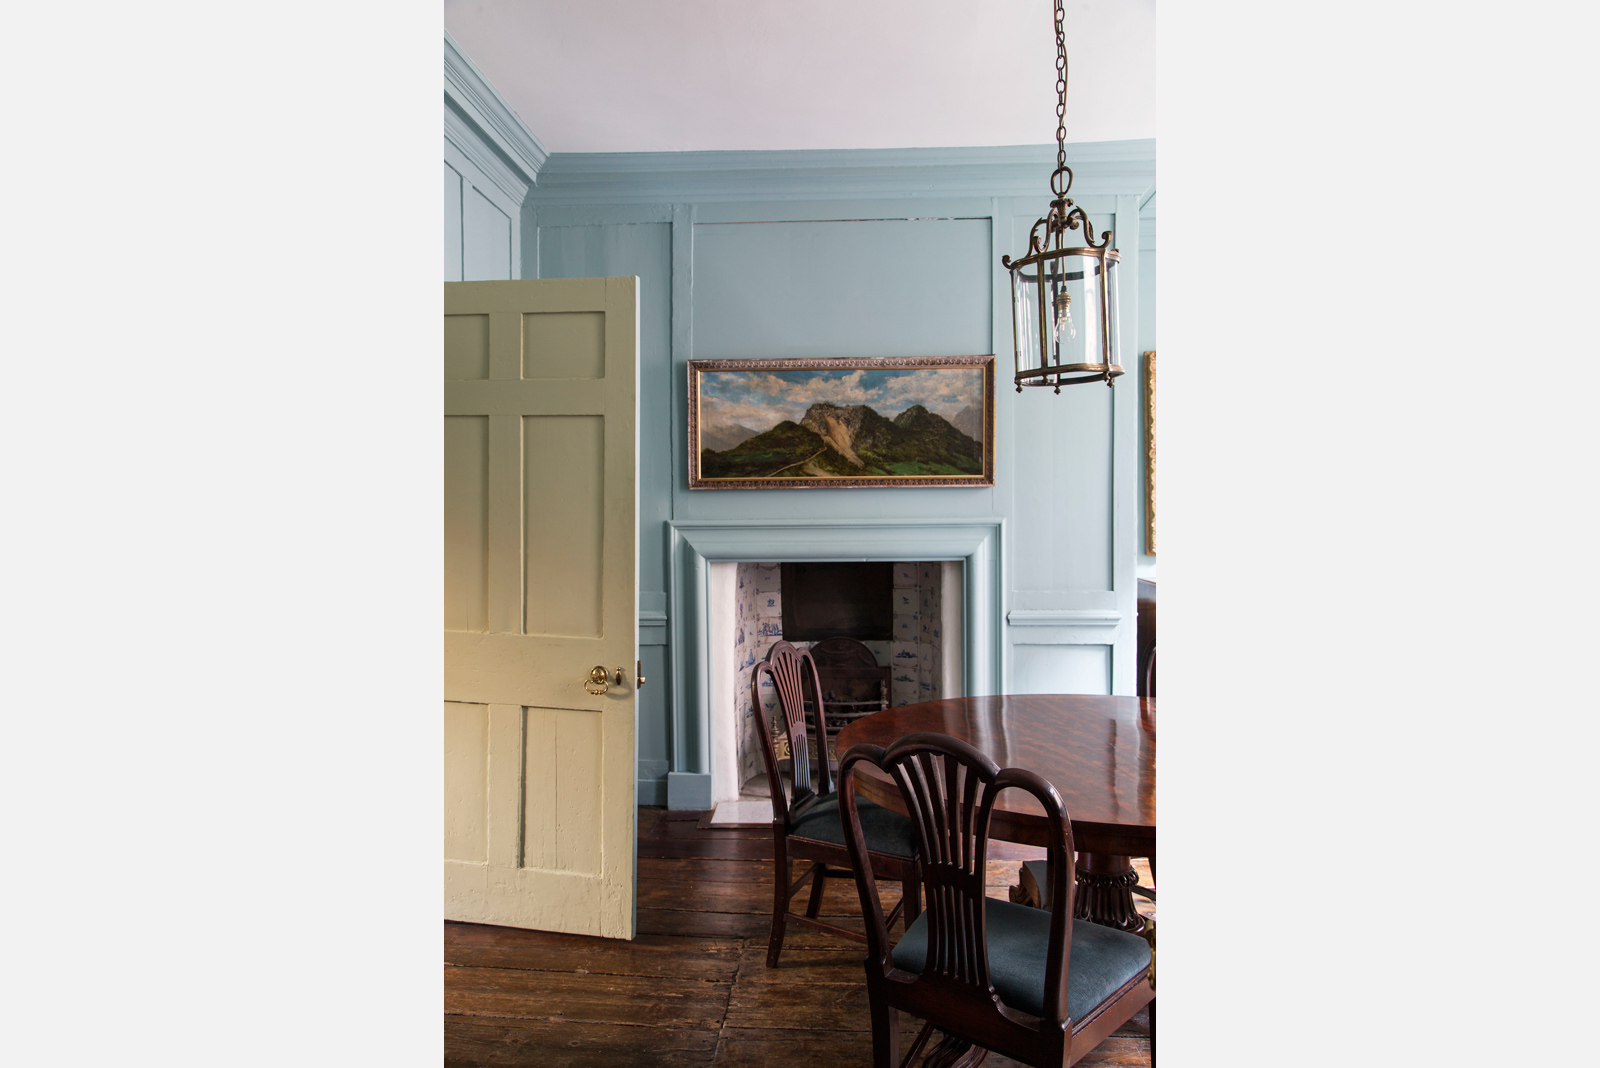 Number 13 Princelet Street was bequeathed to the landmark trust after an extensive restoration. The building retains much of its original floor plan and fabric, most notably its simple panelling, partitions and other joinery. Photography: Landmark Trust